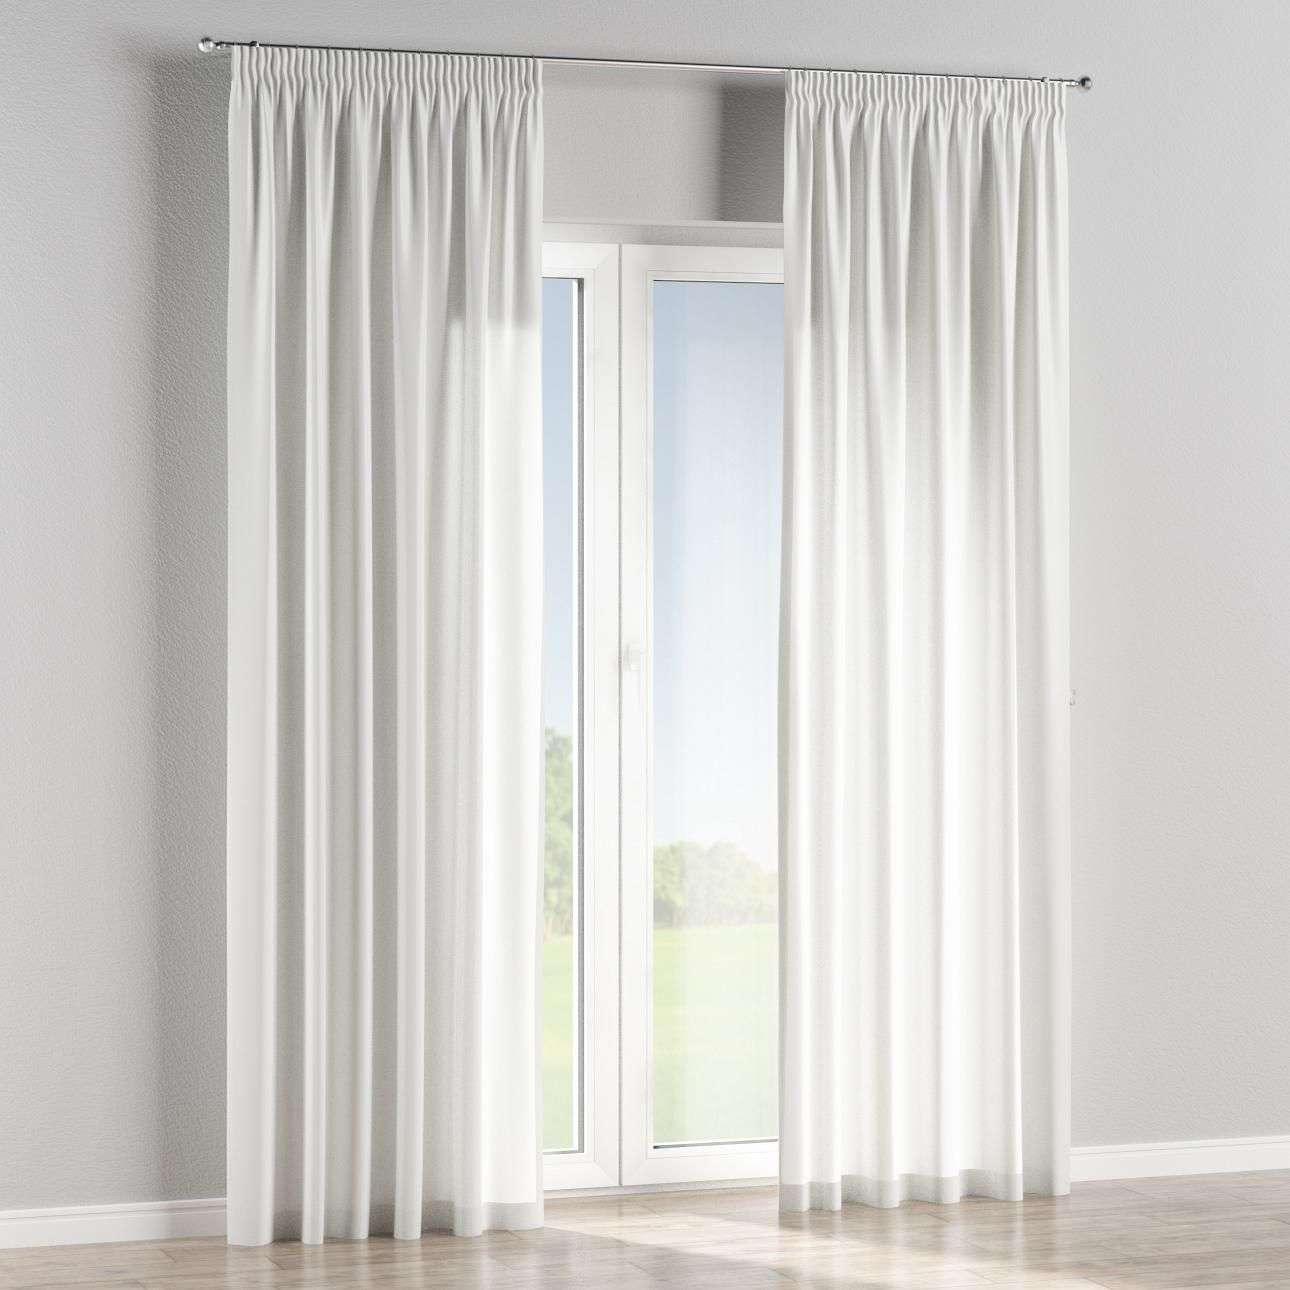 Pencil pleat lined curtains in collection Rustica, fabric: 138-21